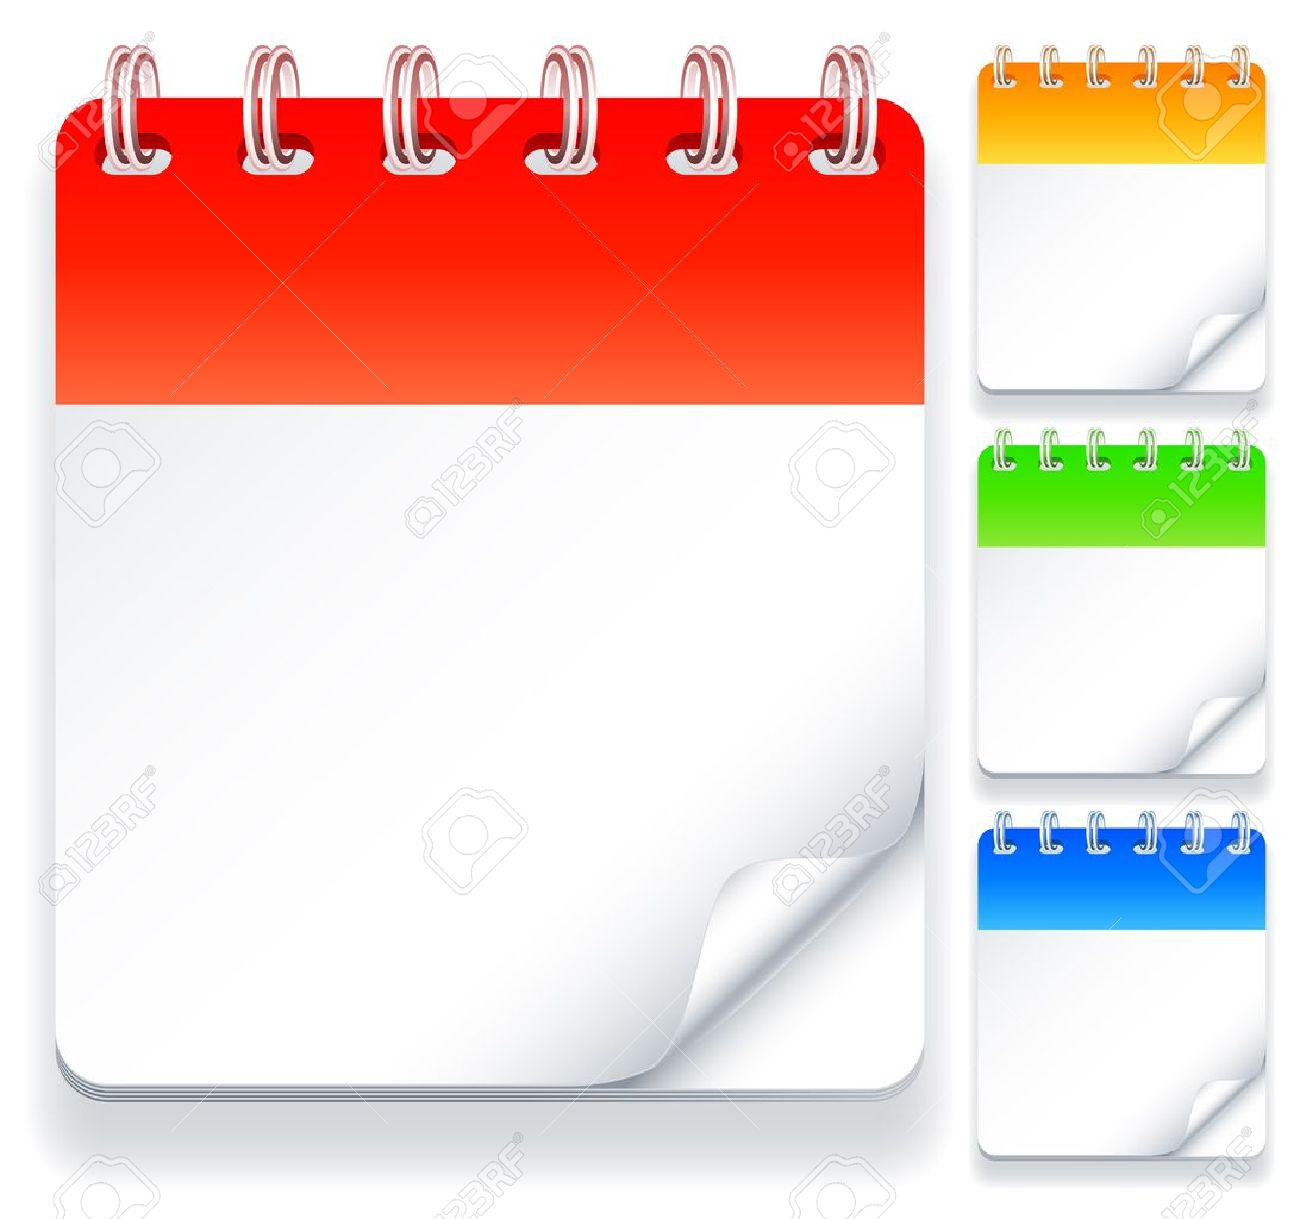 Color Calendars With Blank Pages. Royalty Free Cliparts, Vectors ...